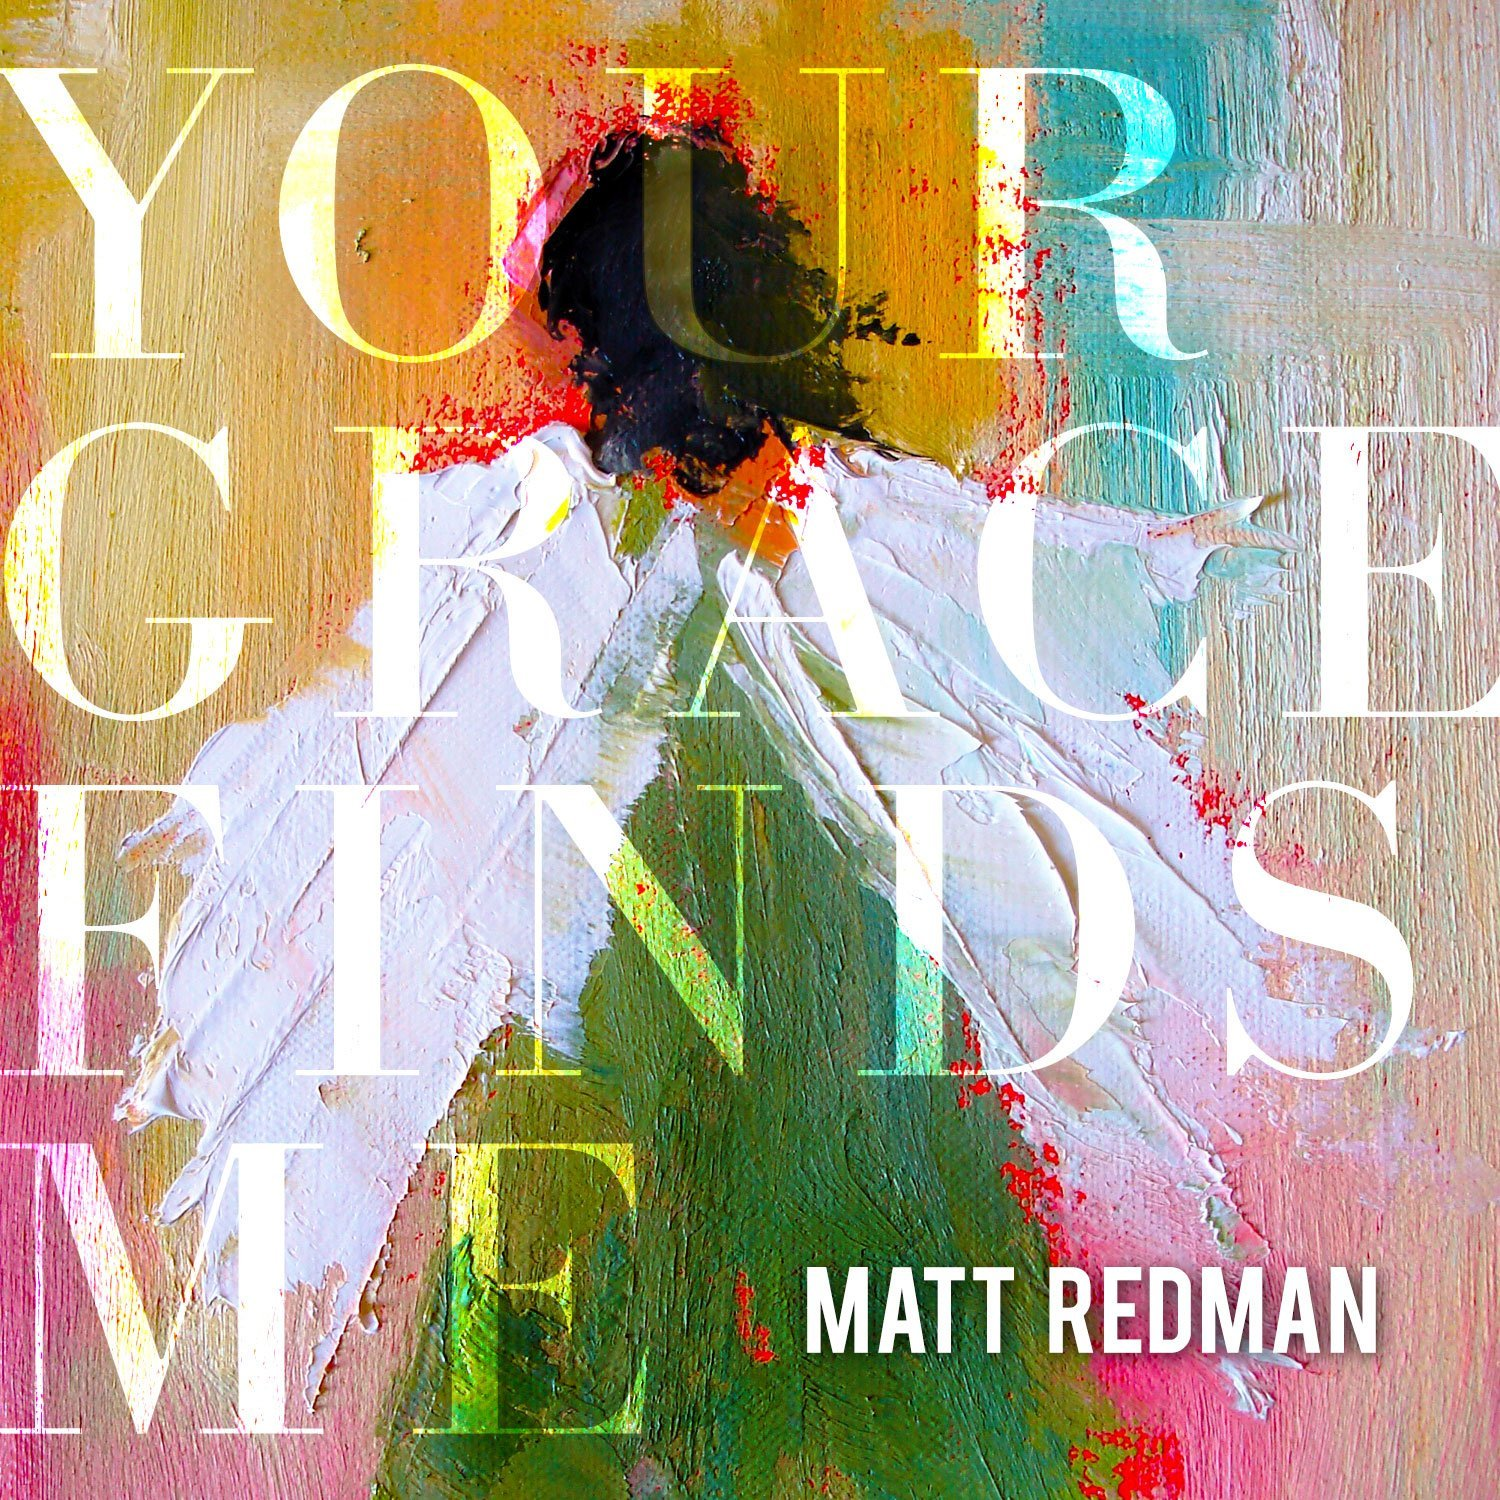 Full Band Tutorial For Your Grace Finds Me By Matt Redman